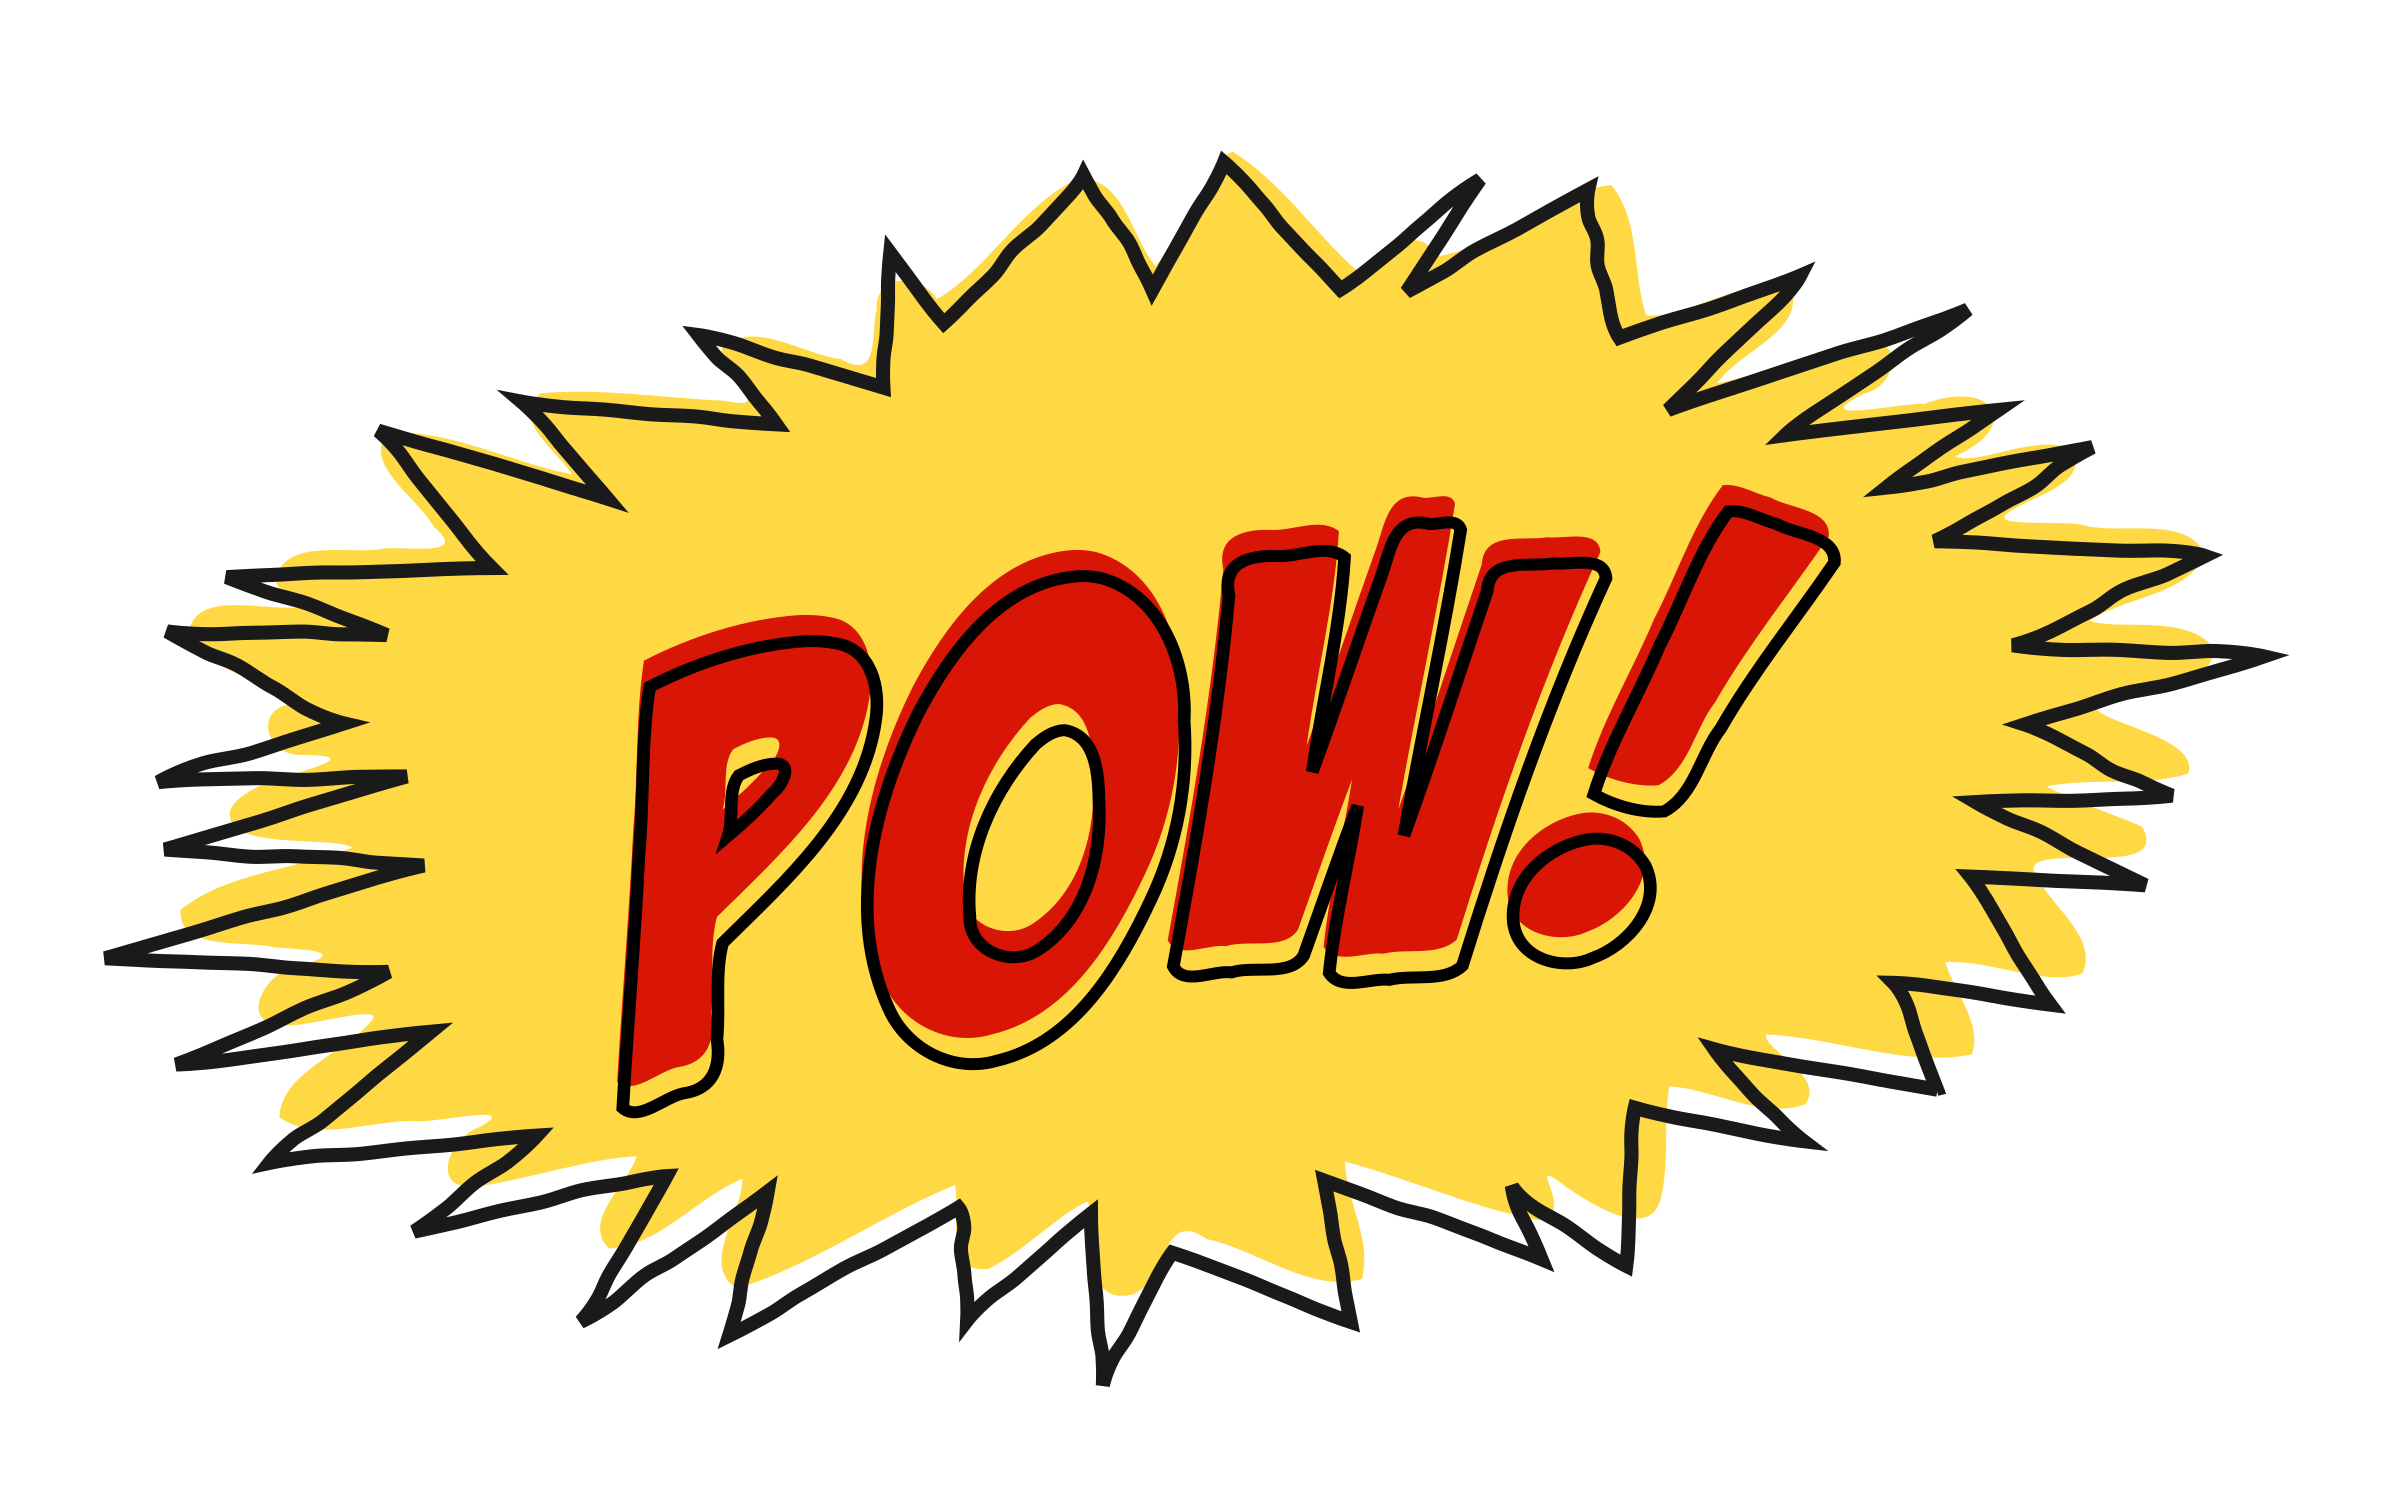 Comic book pow png. Sound effect no background